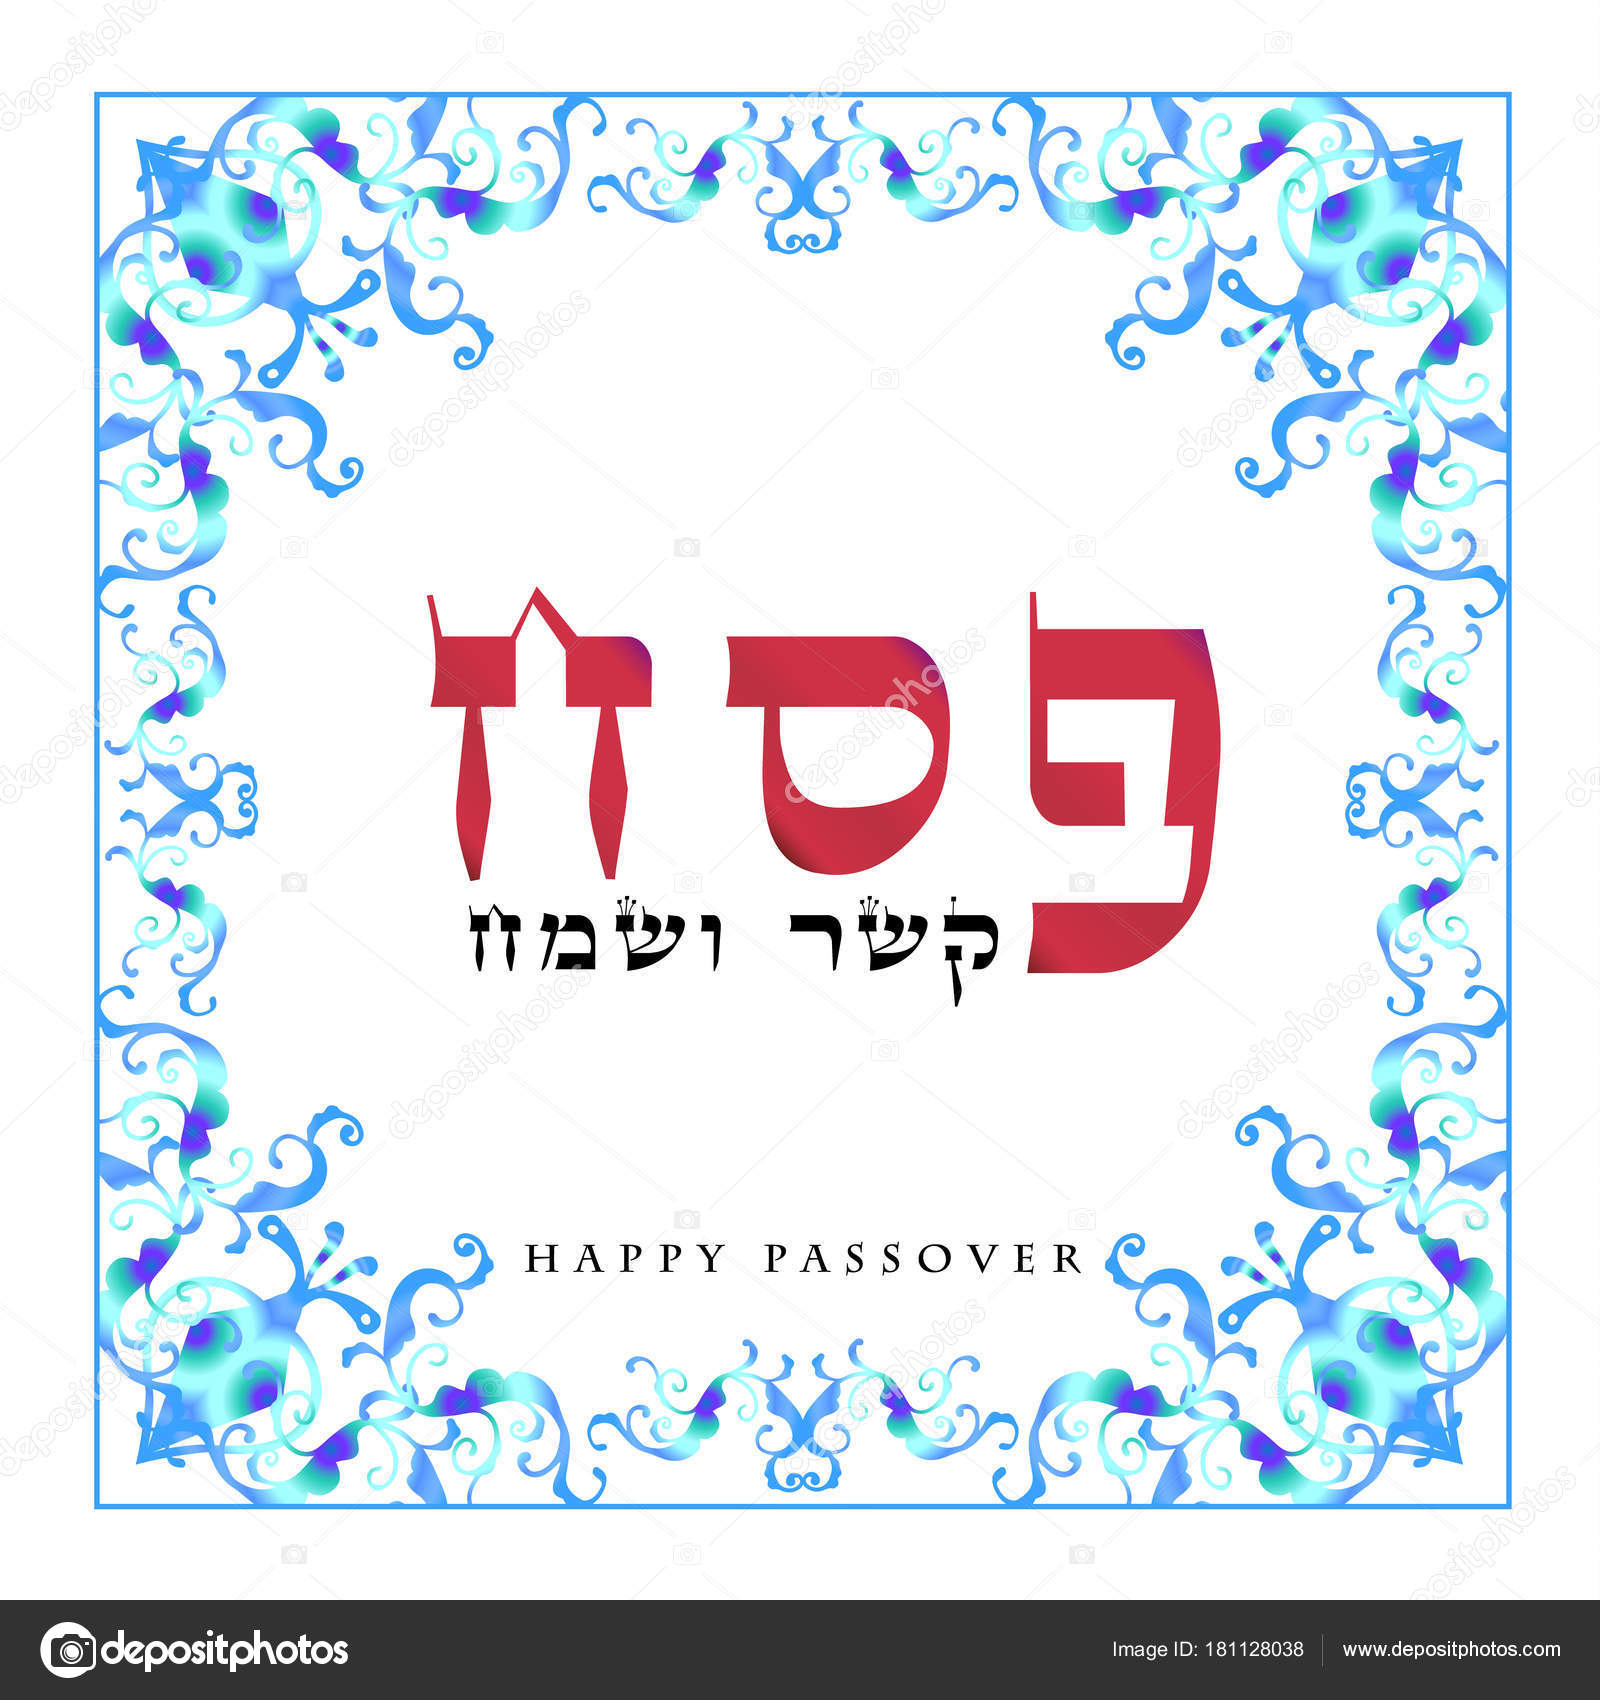 Happy passover holiday translate hebrew lettering greeting card happy passover holiday translate from hebrew lettering greeting card decorative ornamental vintage floral frame four wine glass matza is an jewish m4hsunfo Choice Image